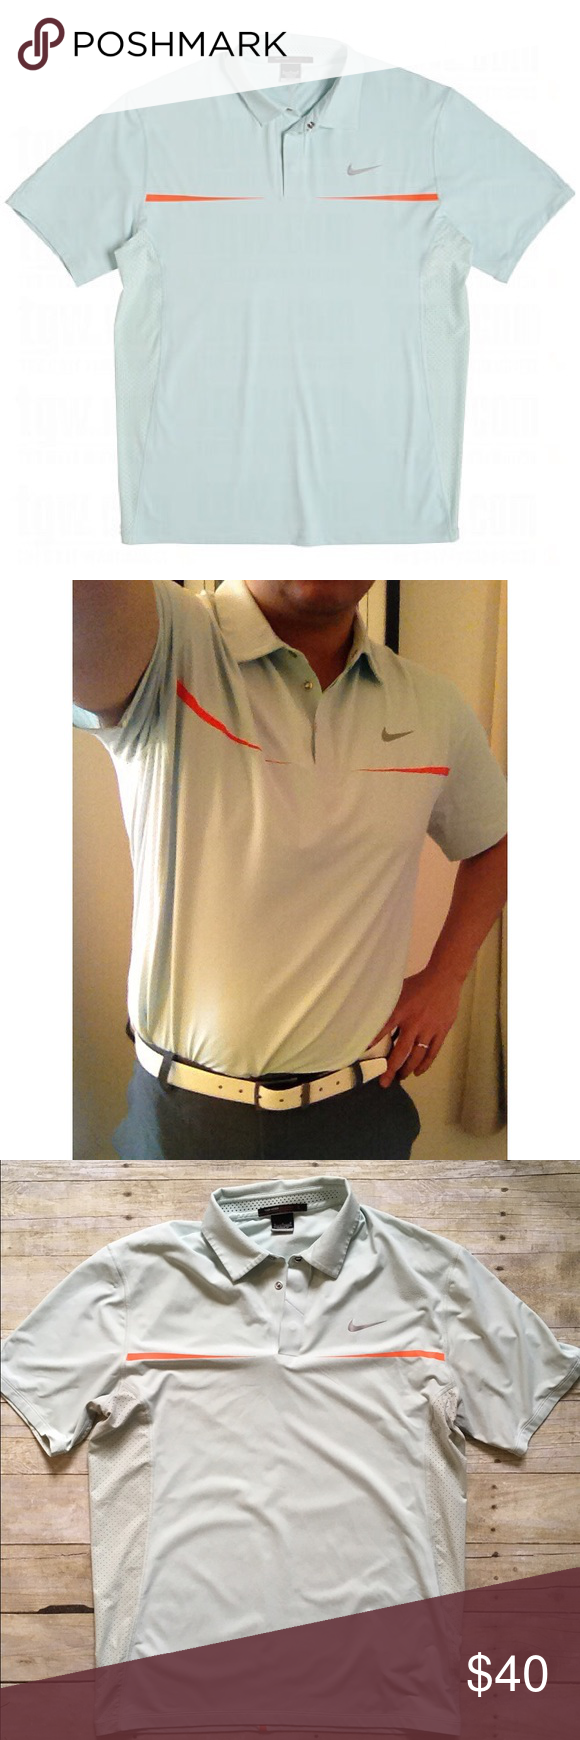 0ad685a4c4 Nike Golf Tiger Woods Collection dri-fit mens polo Style meets efficiency  with the Tiger